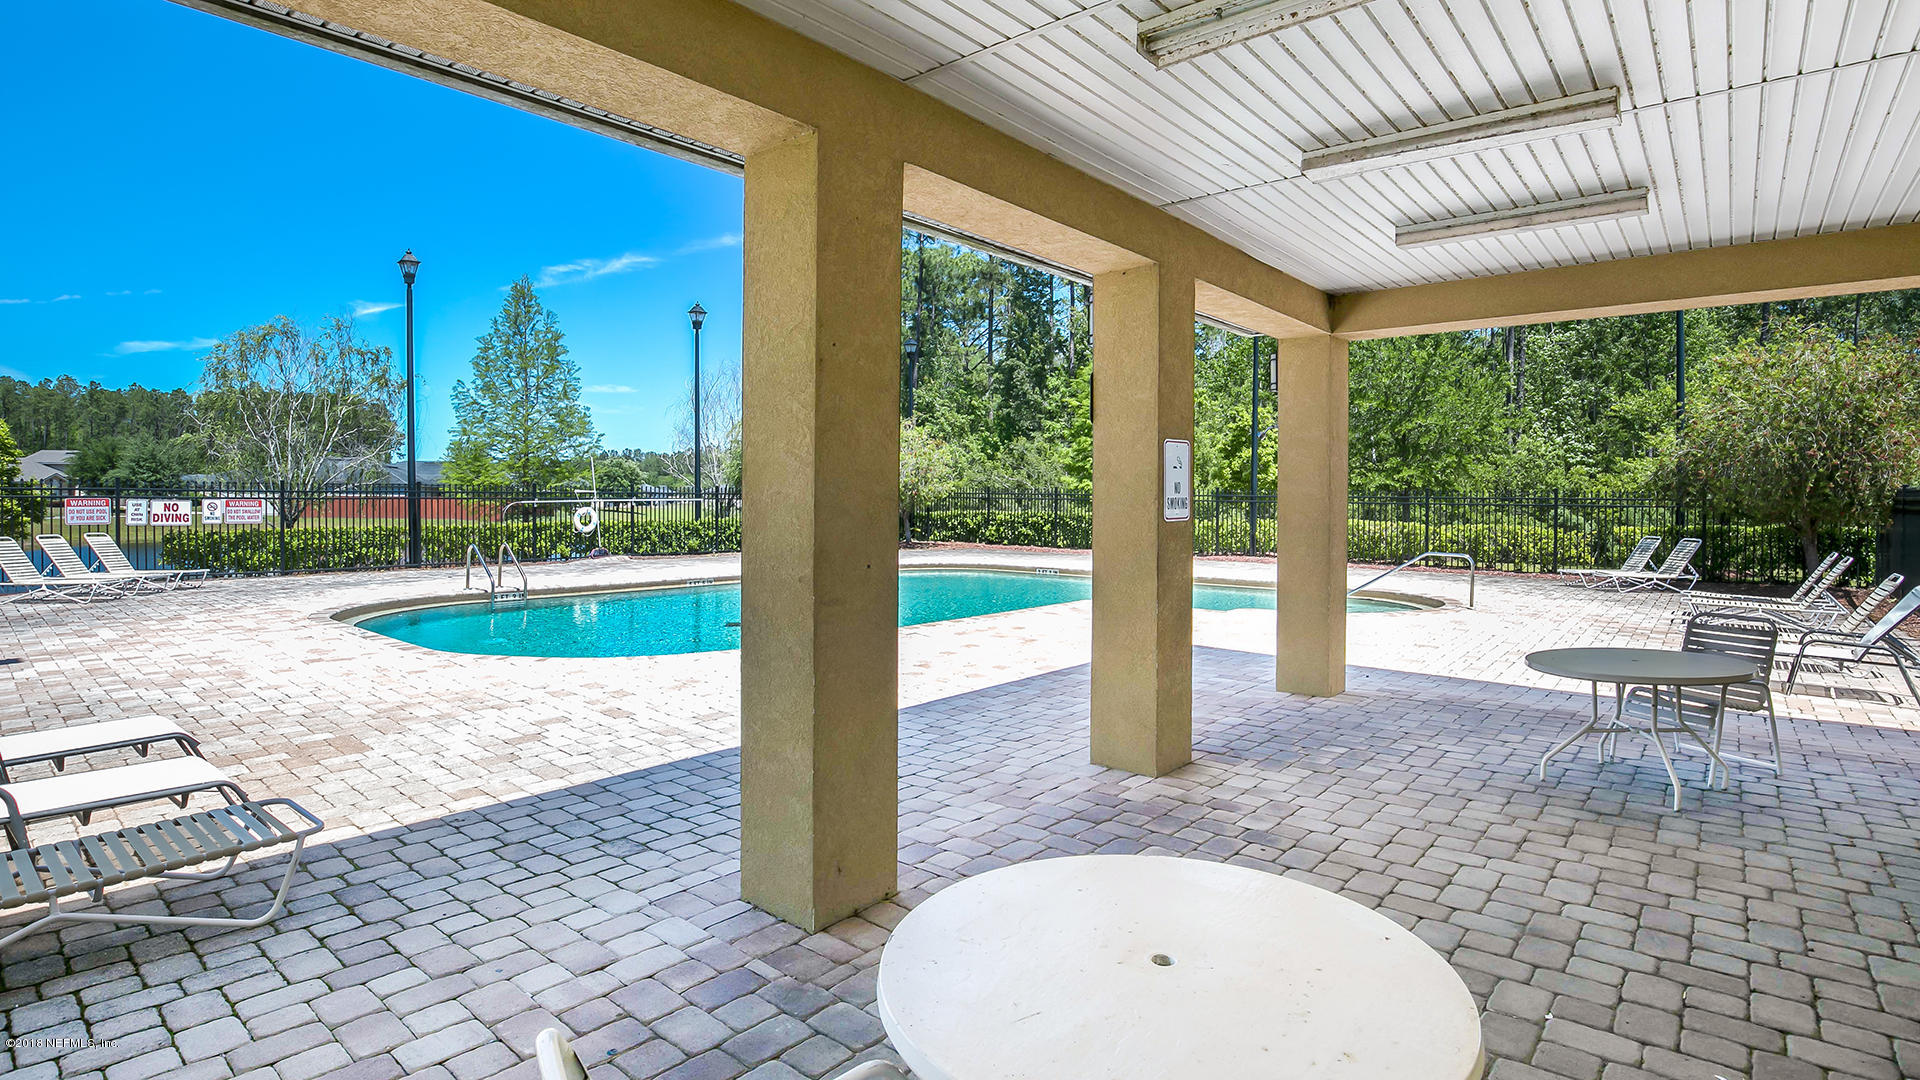 3206 ROGERS, JACKSONVILLE, FLORIDA 32208, 3 Bedrooms Bedrooms, ,2 BathroomsBathrooms,Residential - single family,For sale,ROGERS,953155